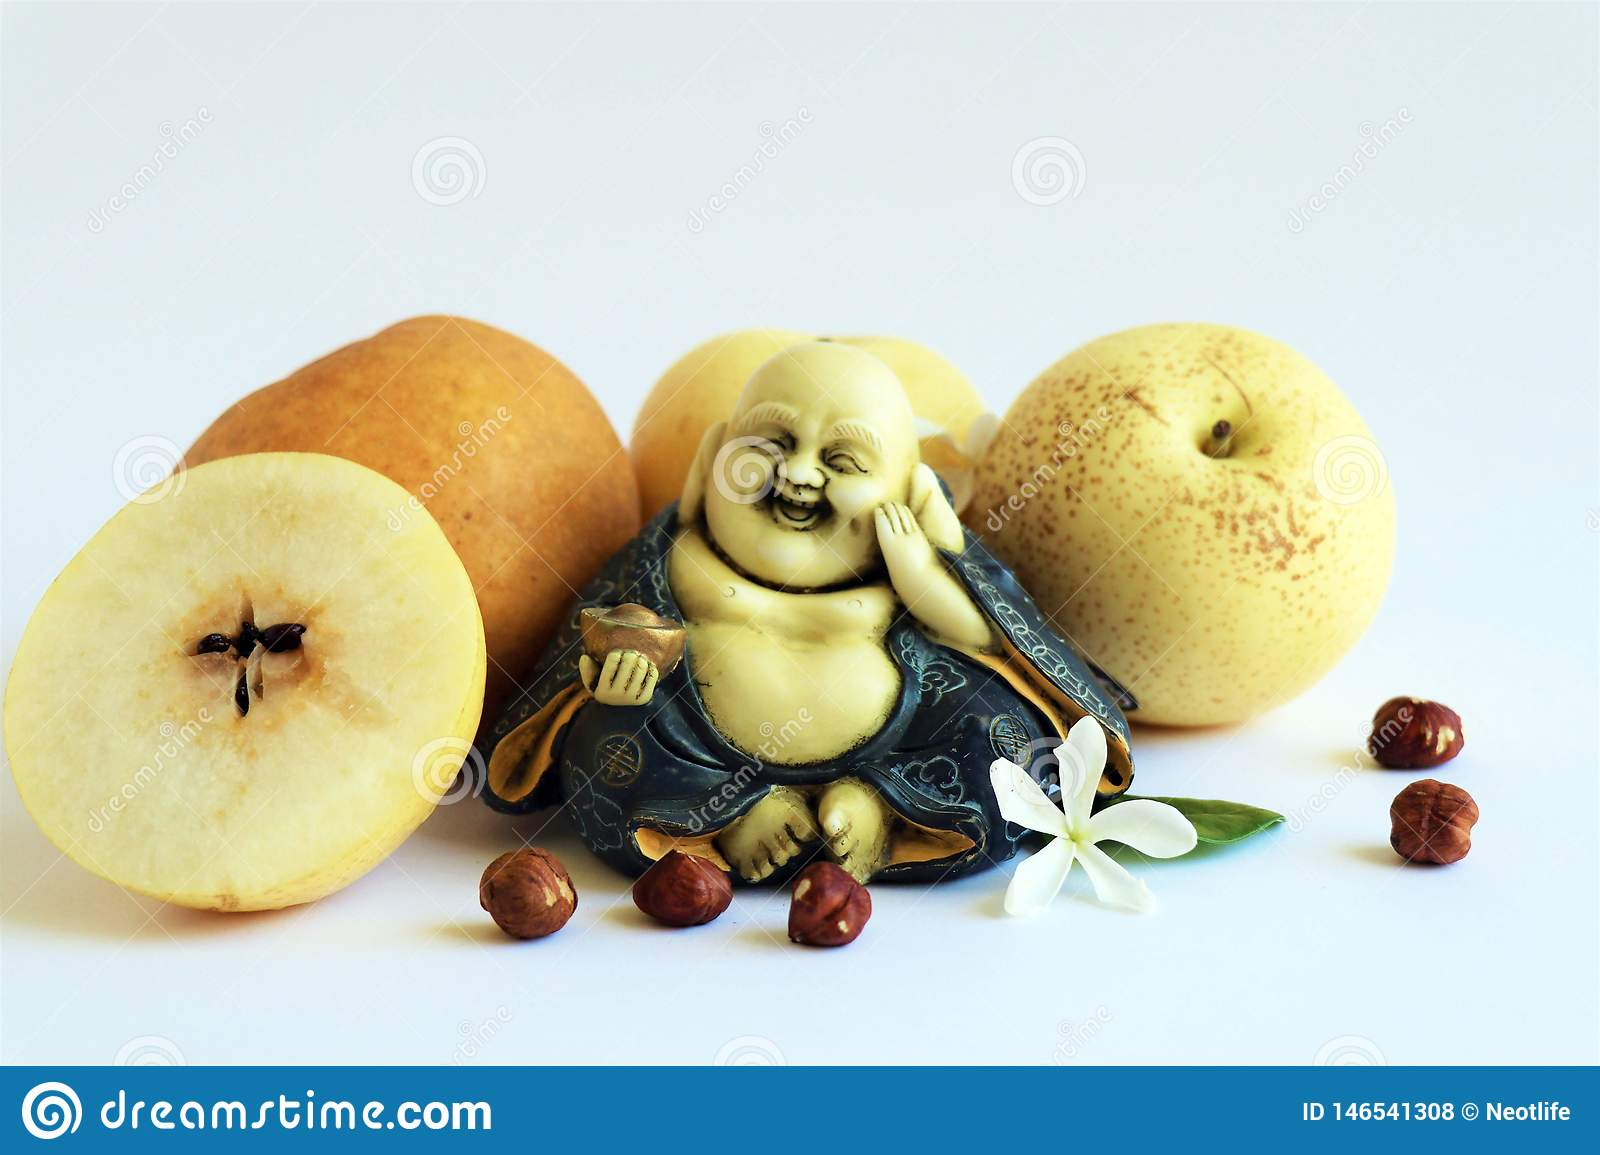 Four asians pears with smiling Buddha